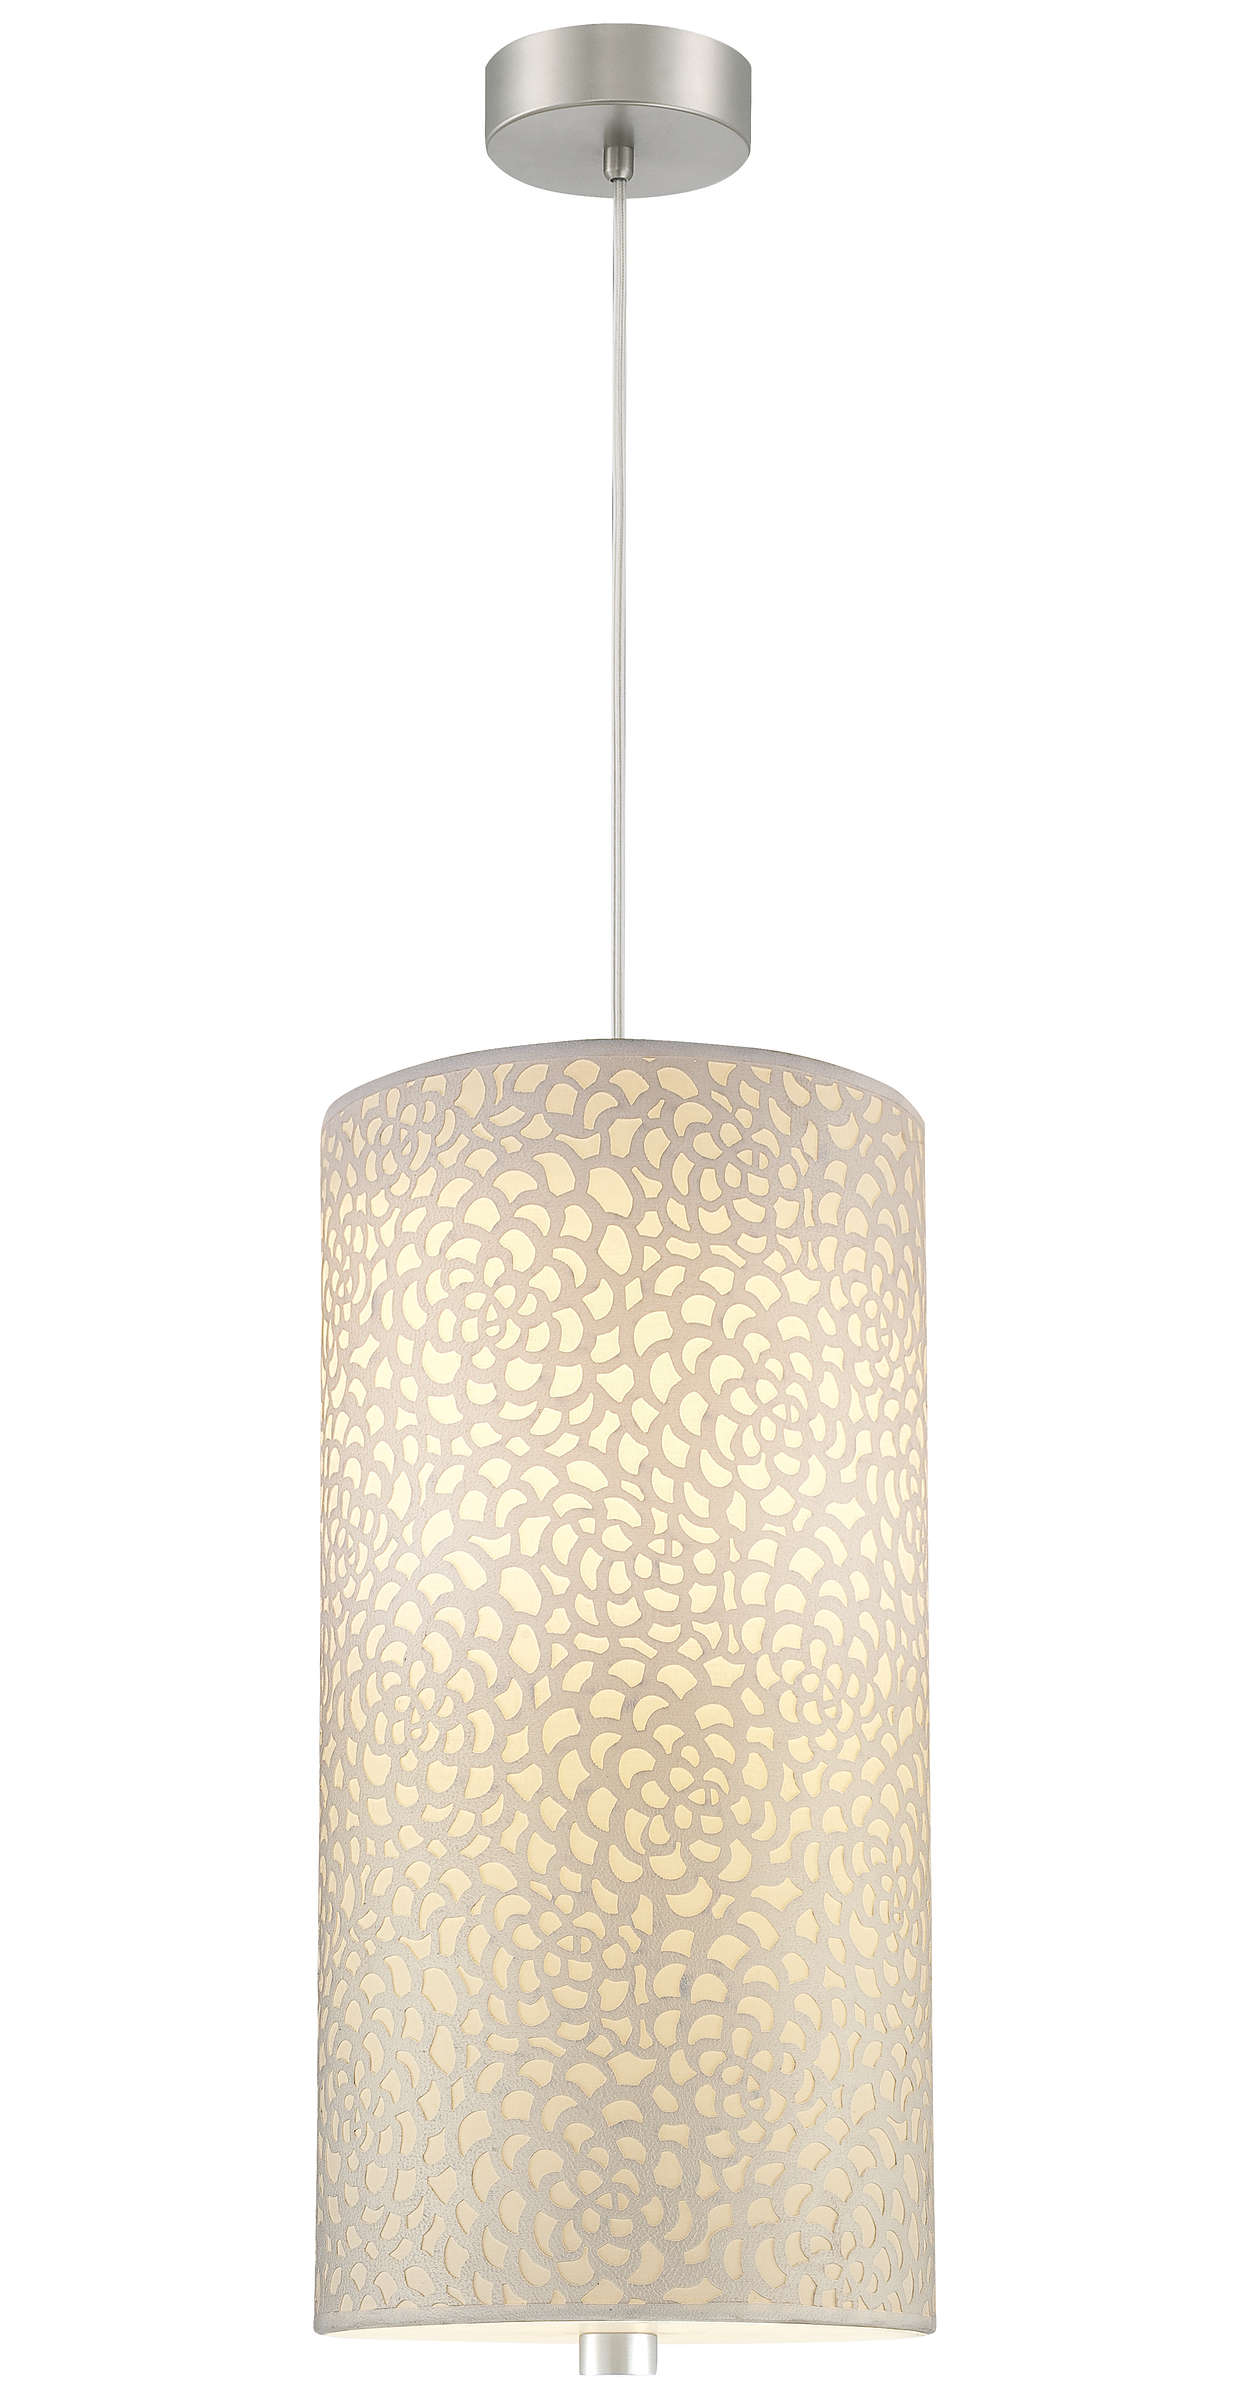 Noe accessory shade in Ivory Fabric finish